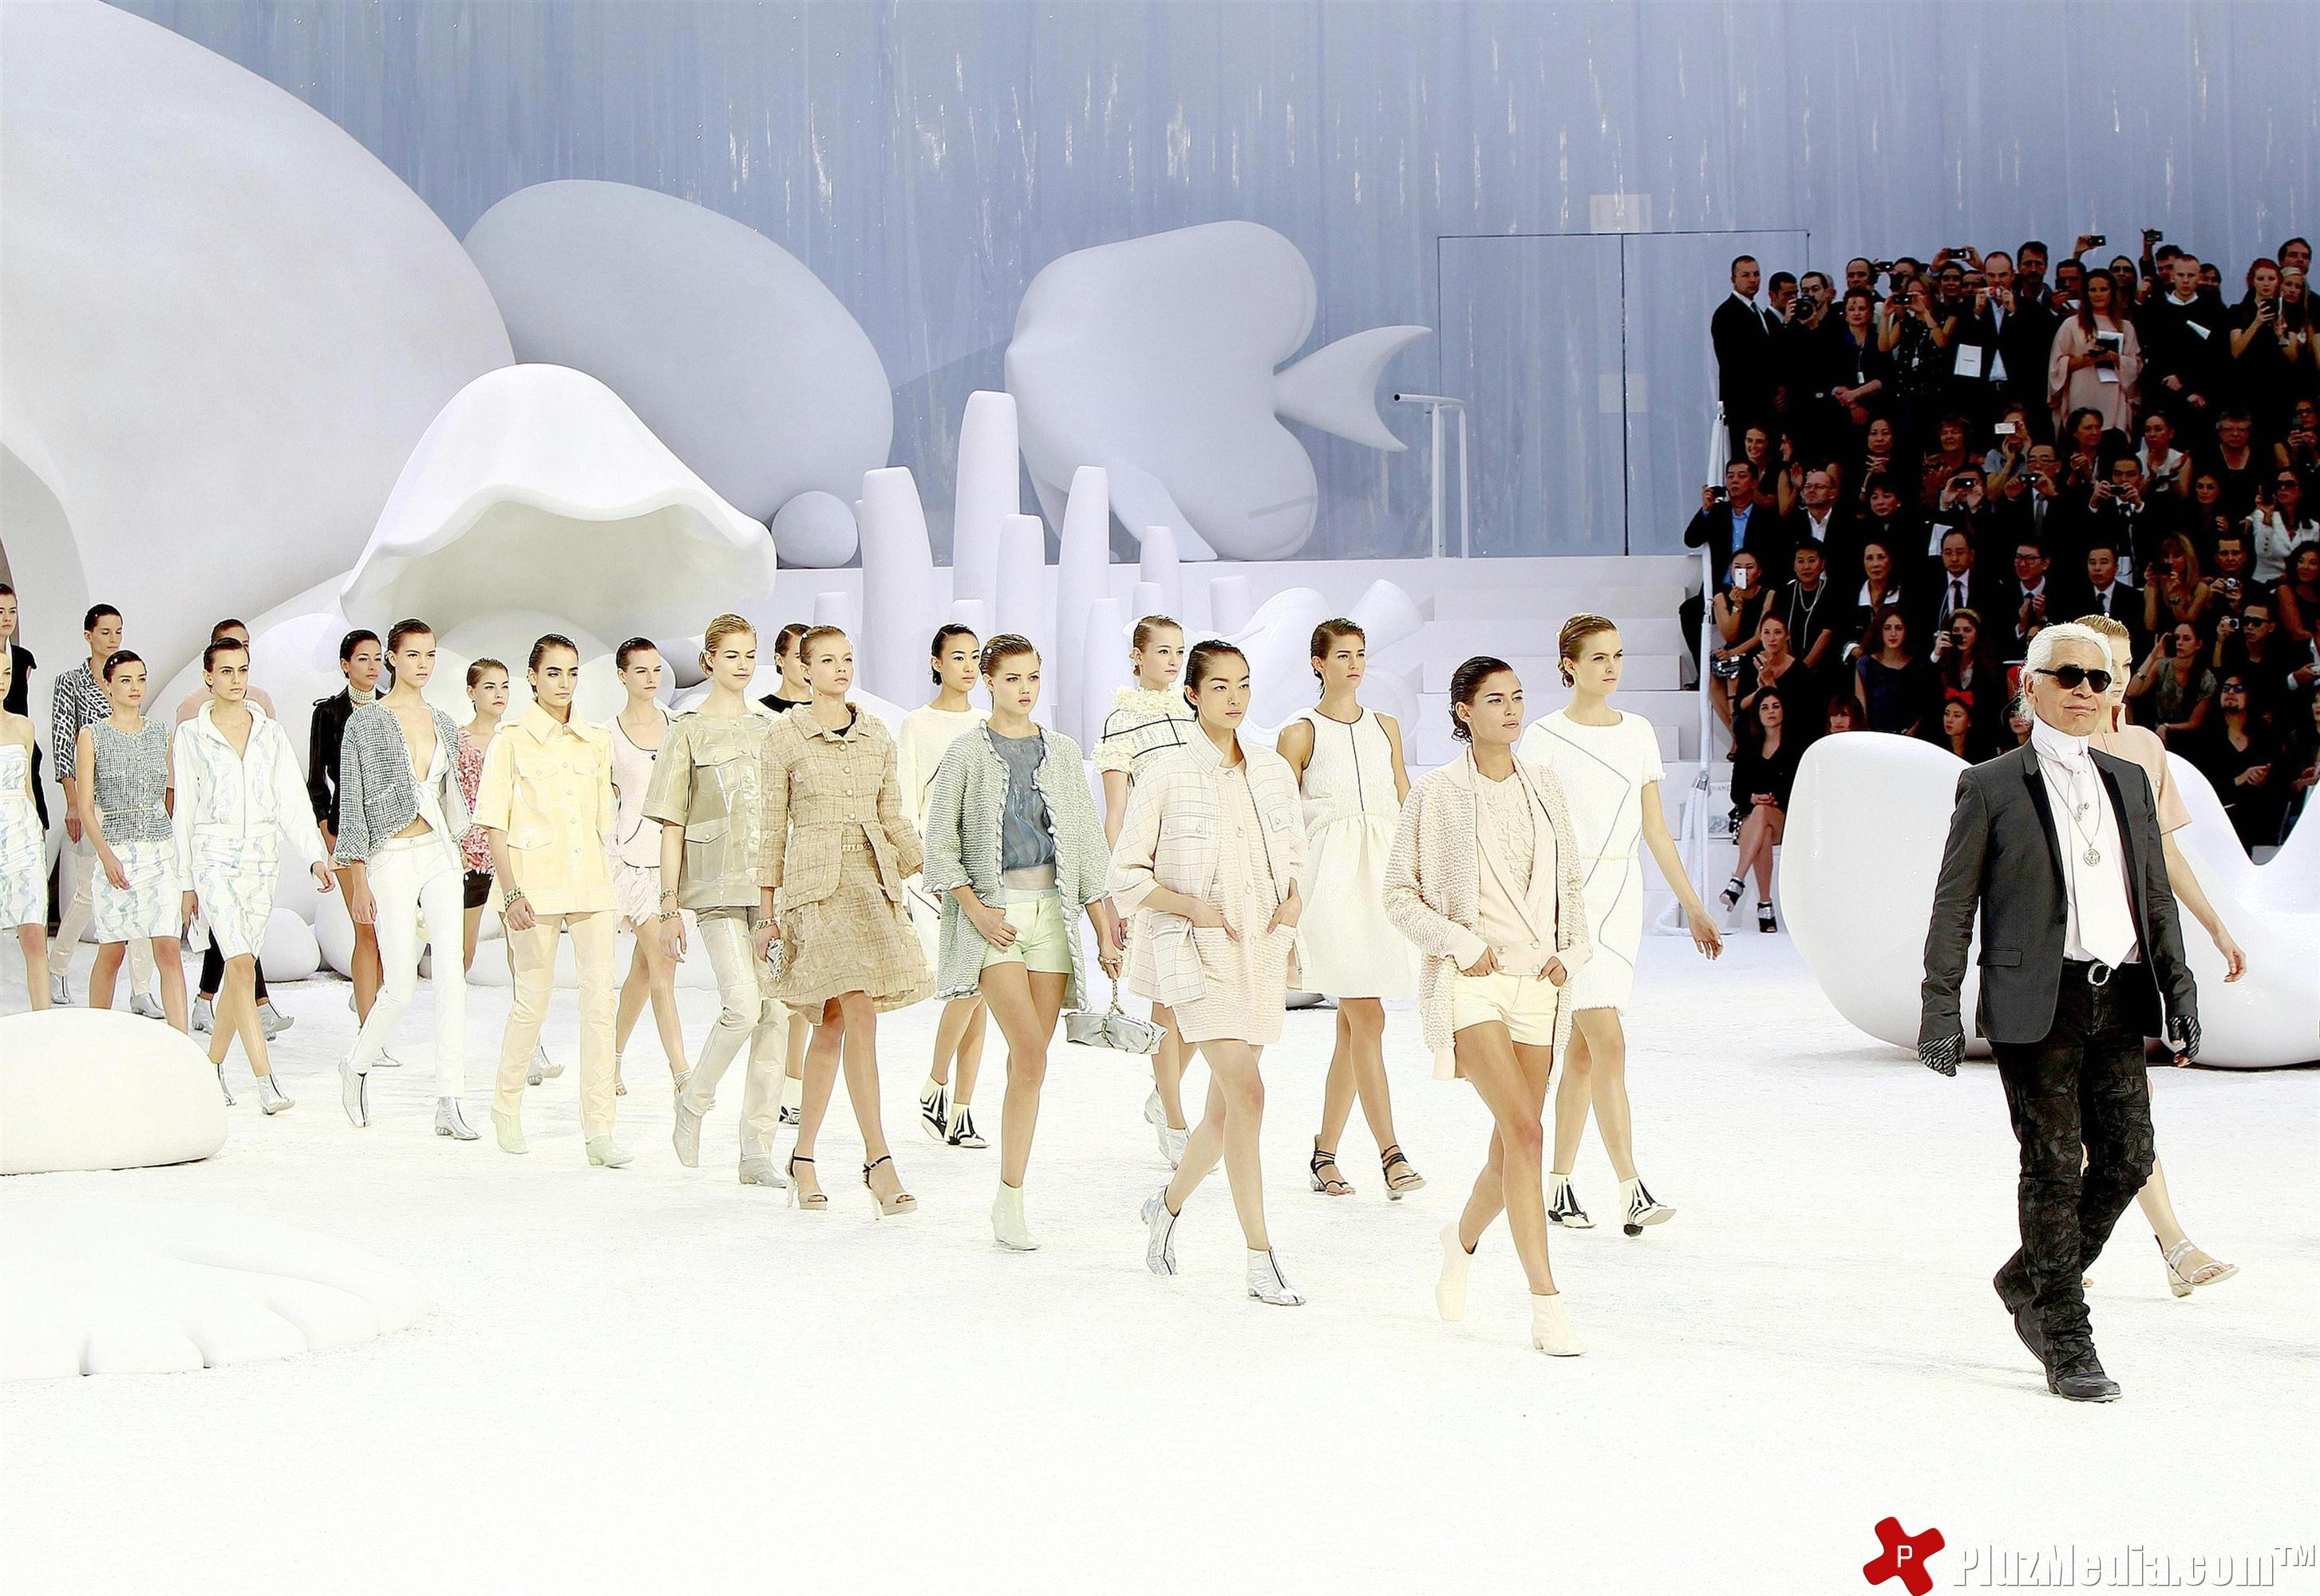 chanel-paris-fashion-week-cum-construiesti-un-brand-de-moda-extraordinar